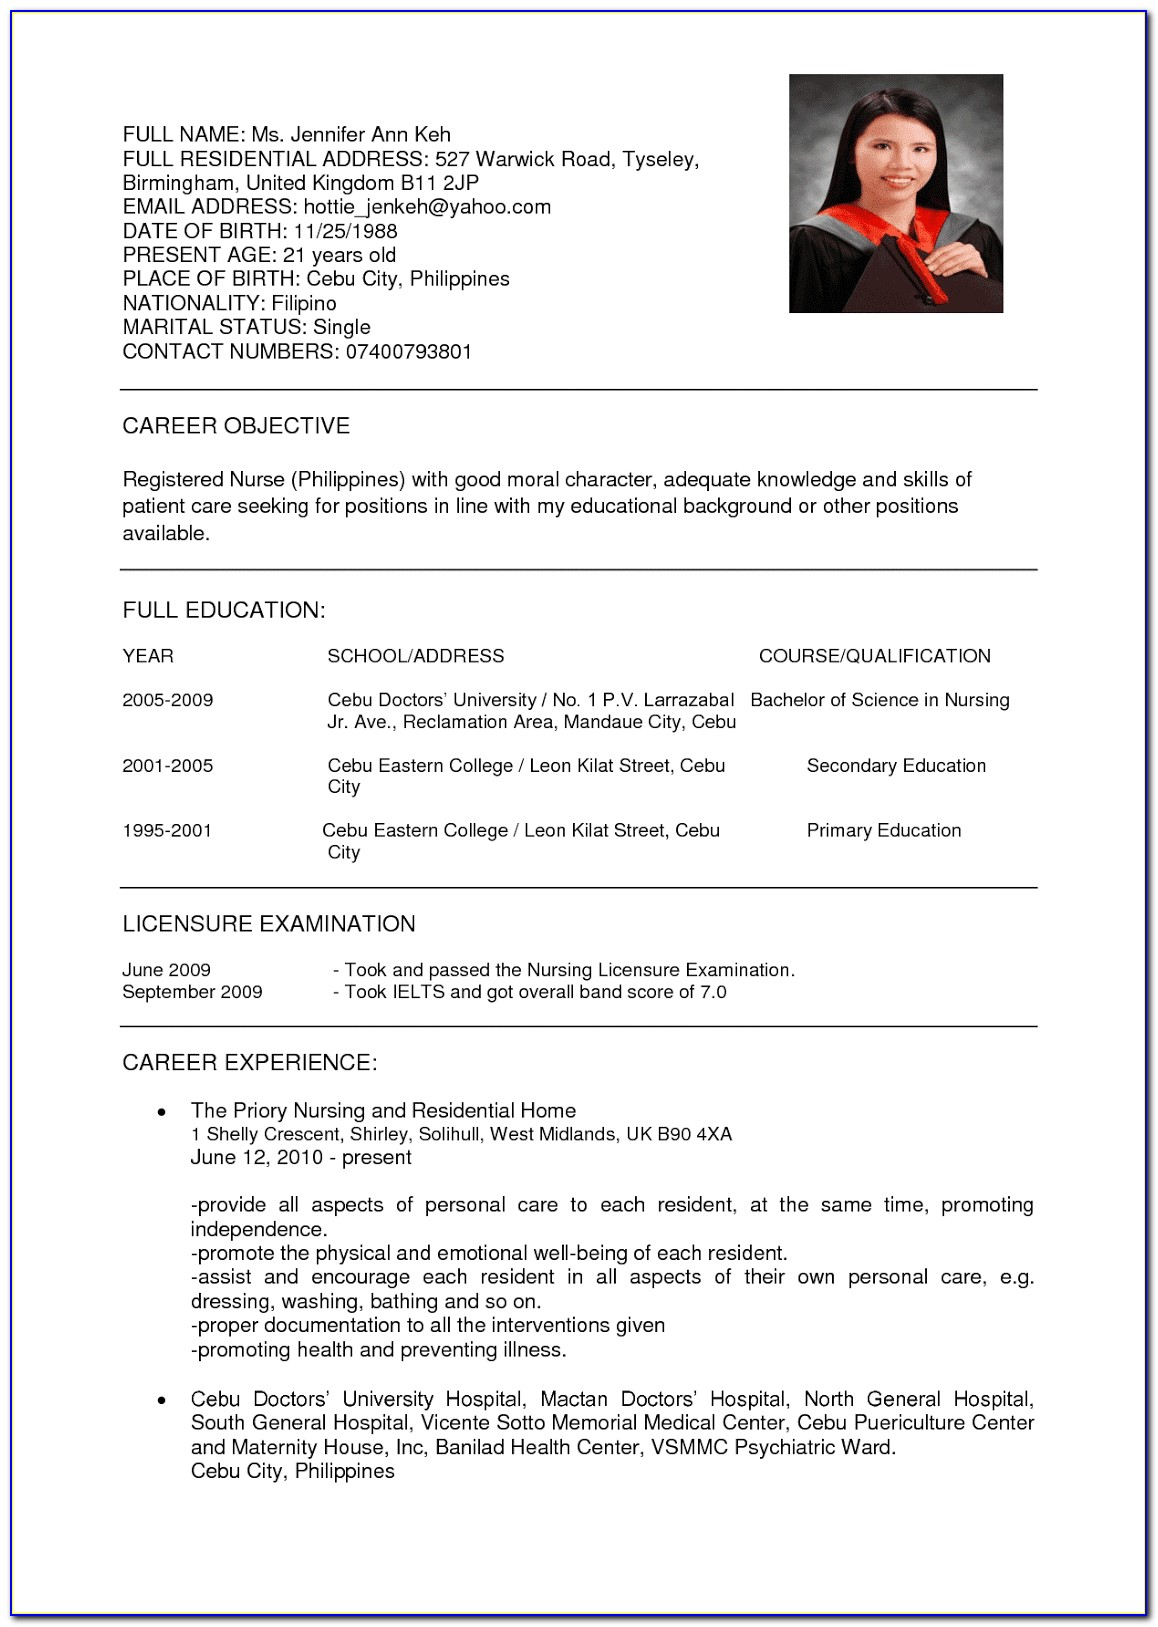 Examples Of Resumes For Registered Nurses